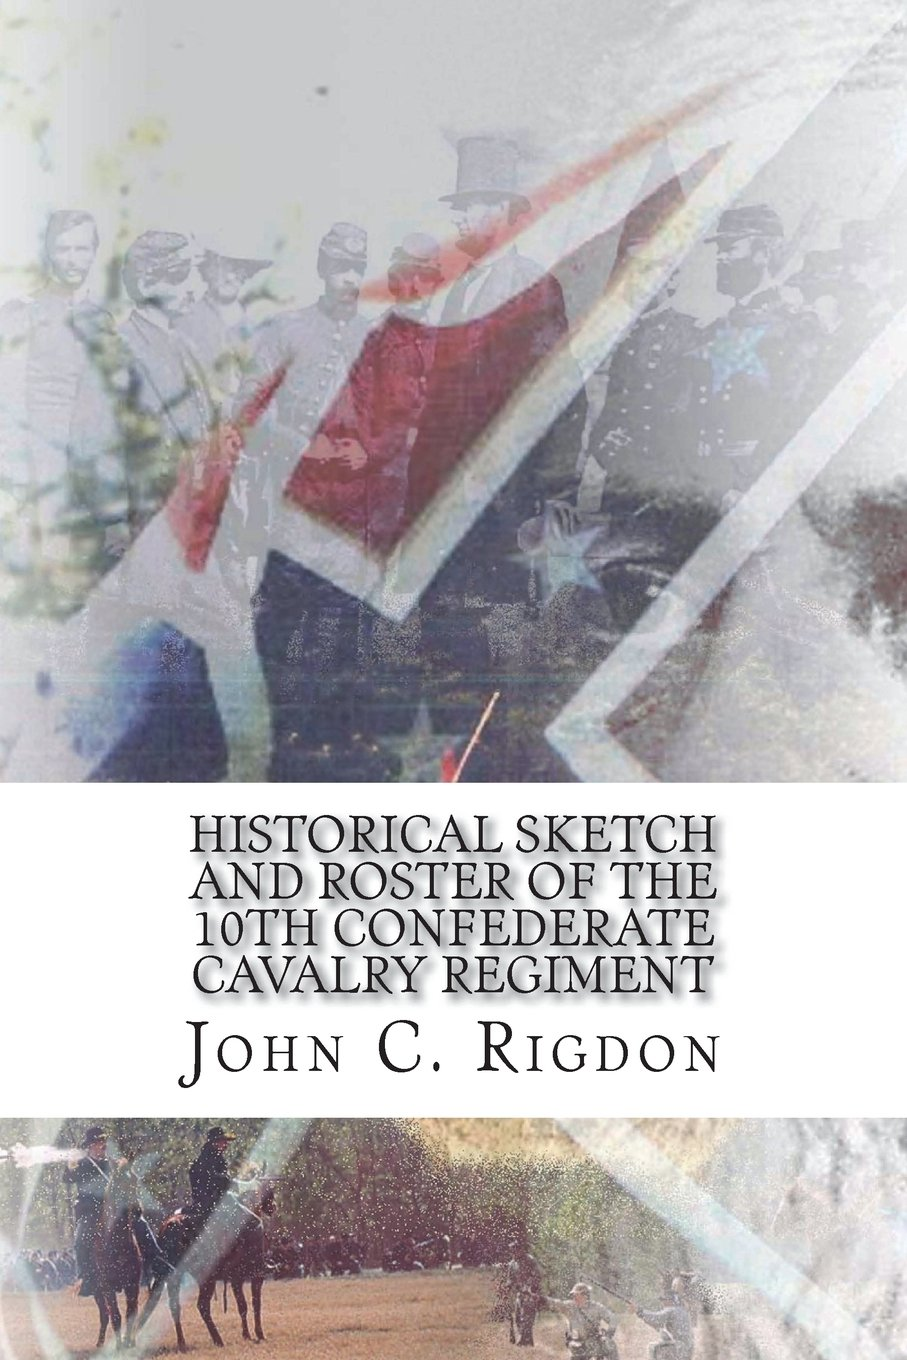 Download Historical Sketch and Roster of the 10th Confederate Cavalry Regiment (Confederate States Regimental History Series) (Volume 2) ebook